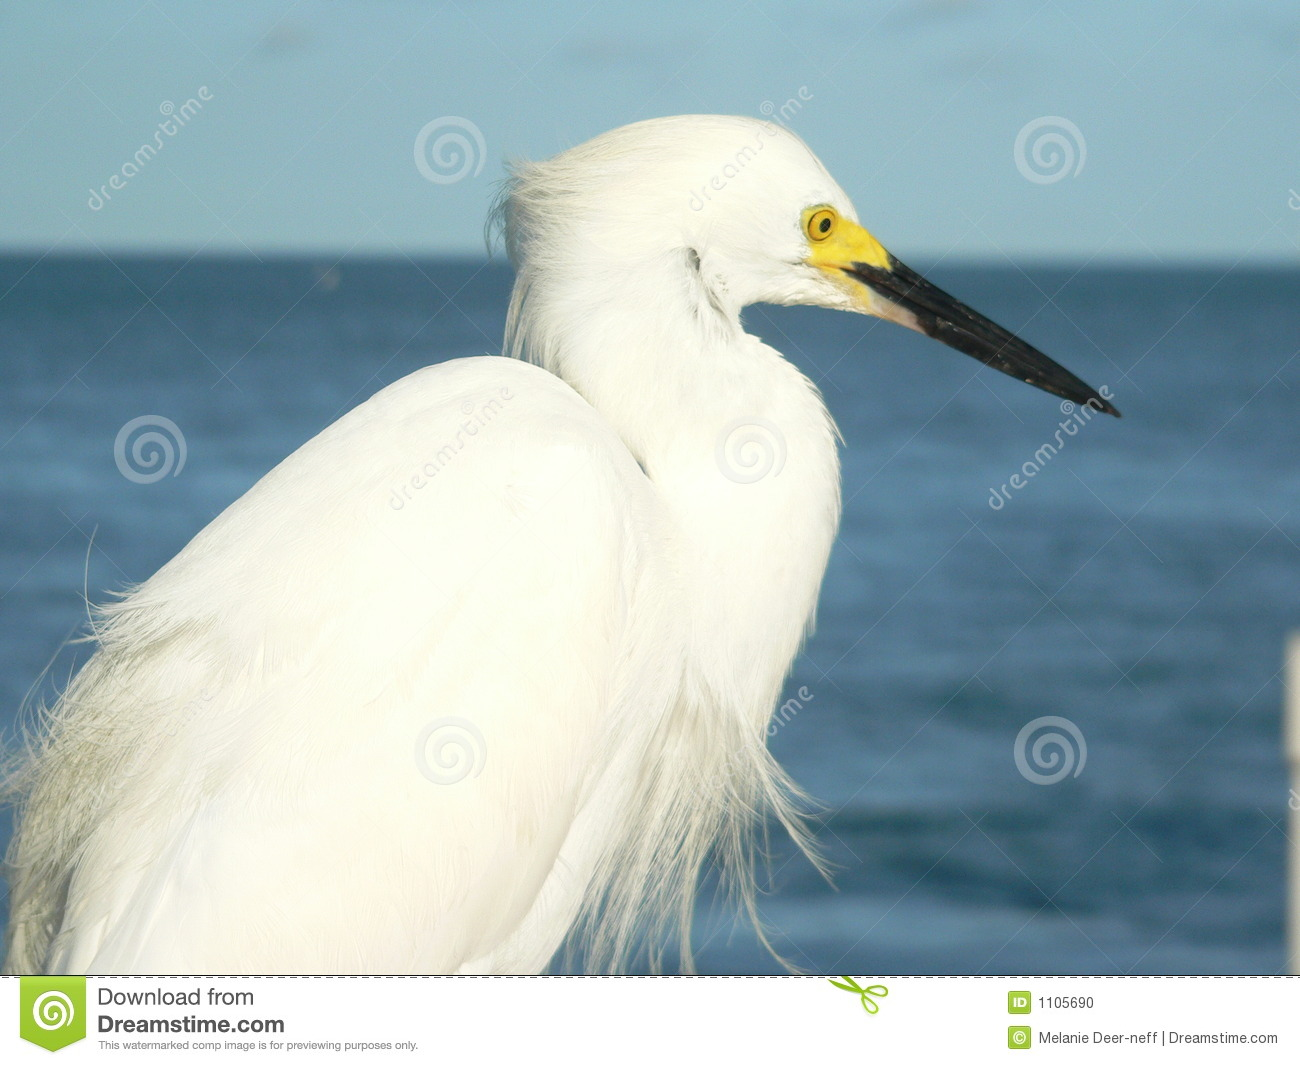 White Water Bird Stock Photo - Image: 1105690